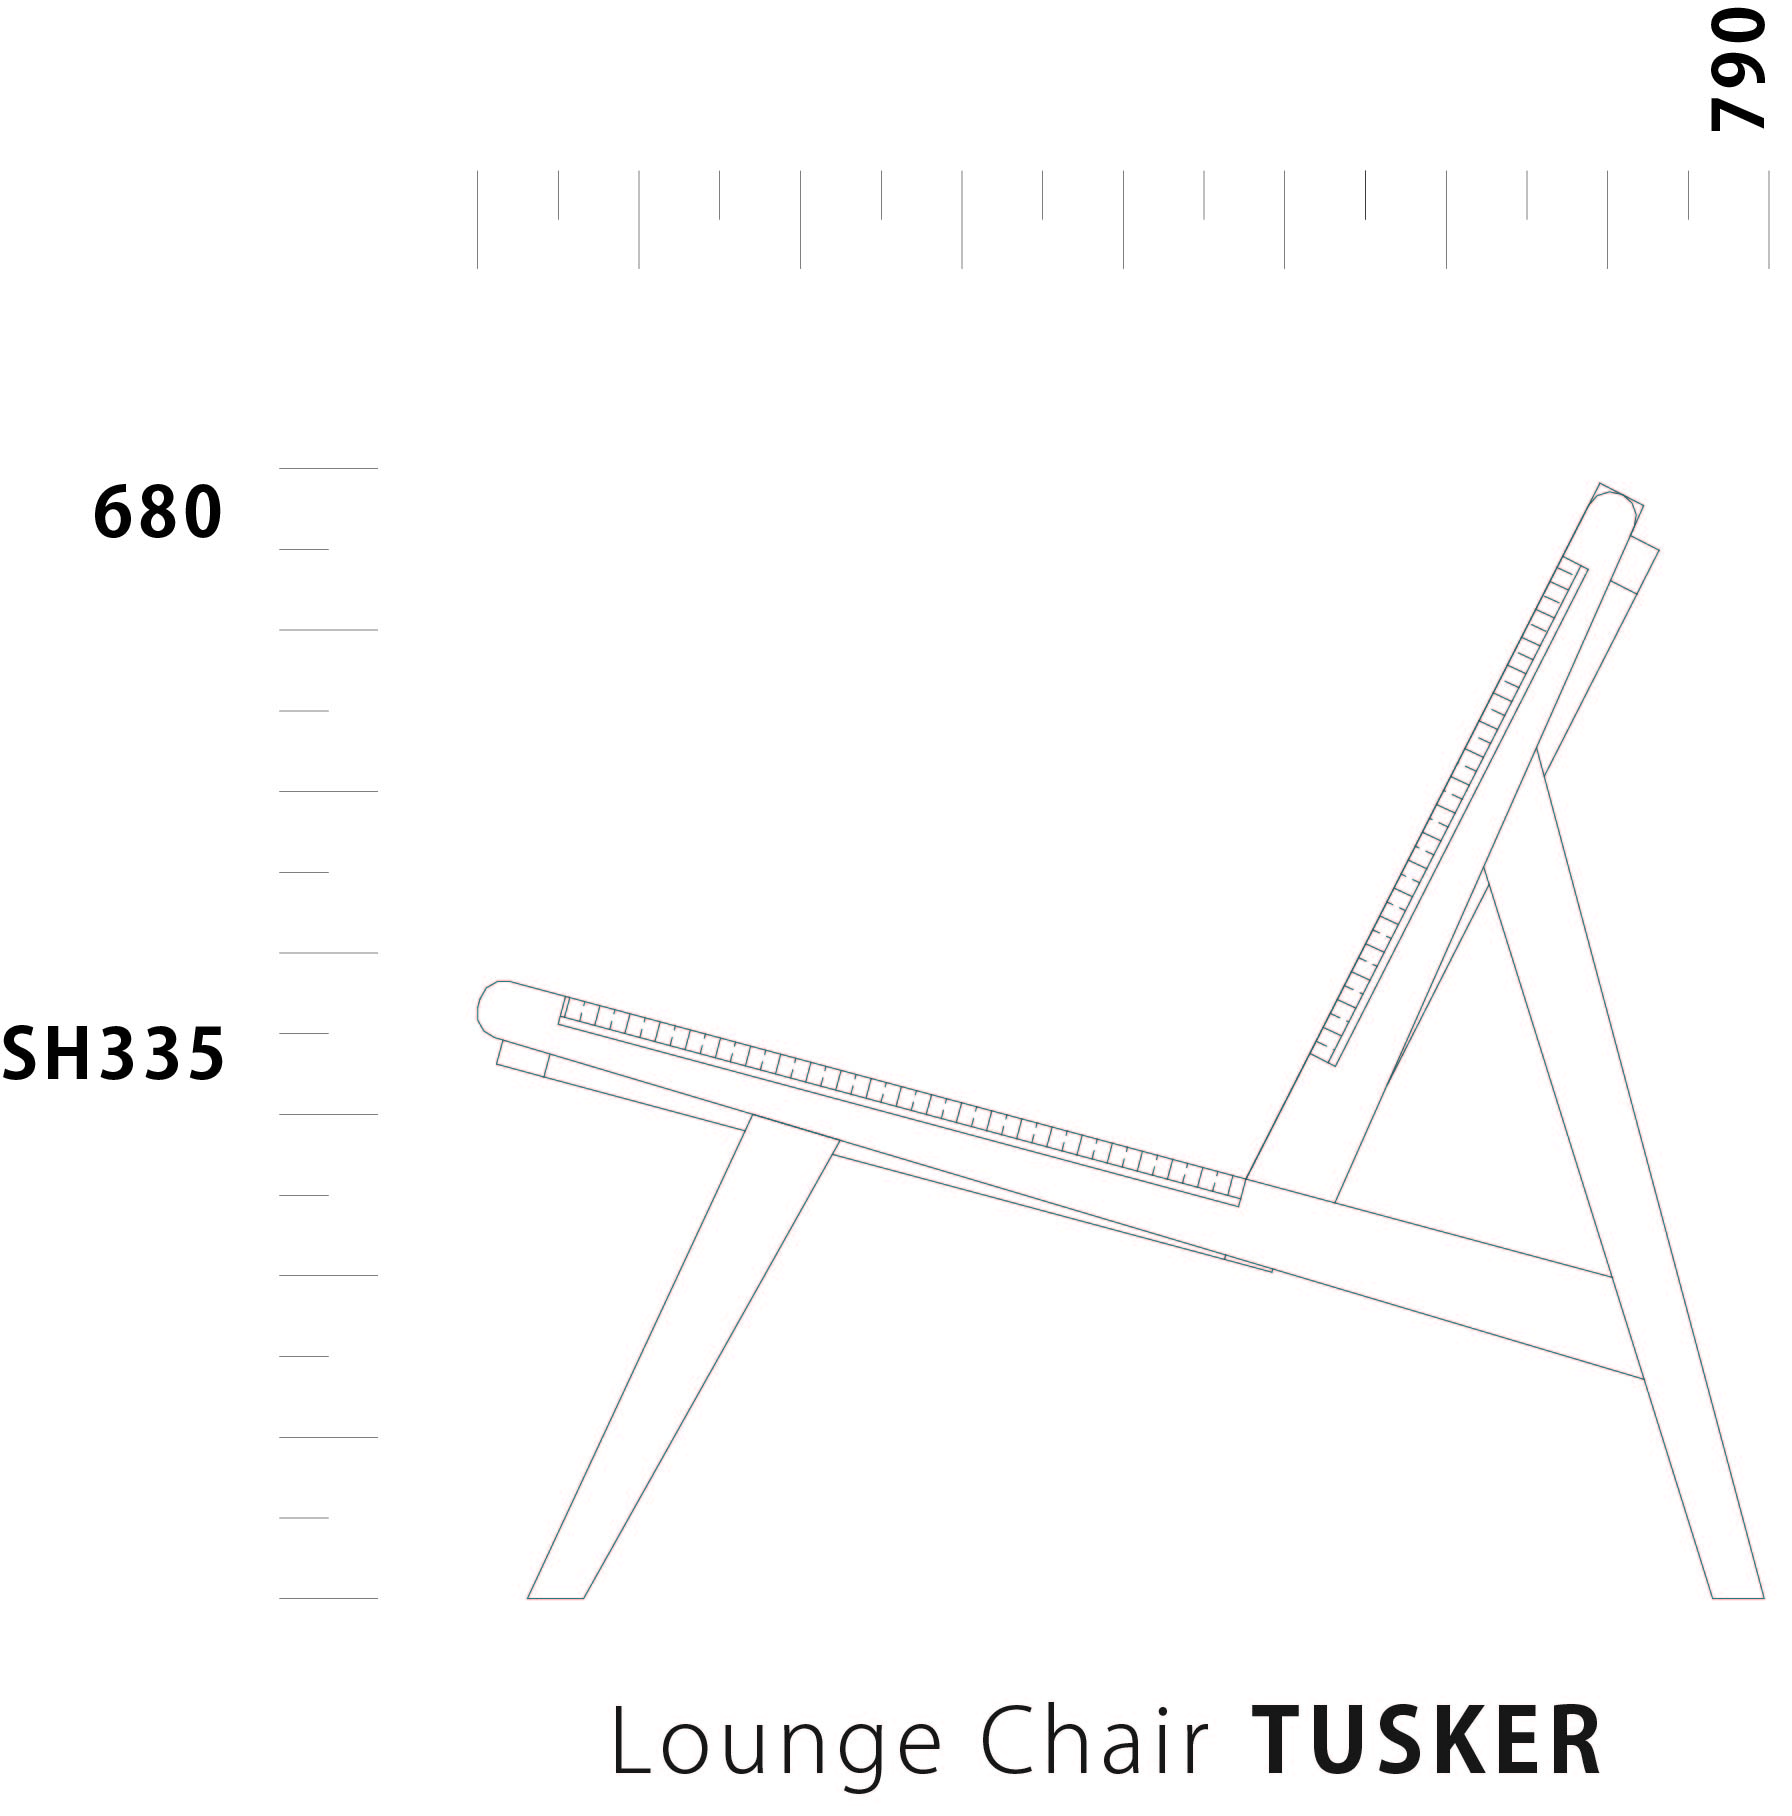 Lounge Chair TUSKER